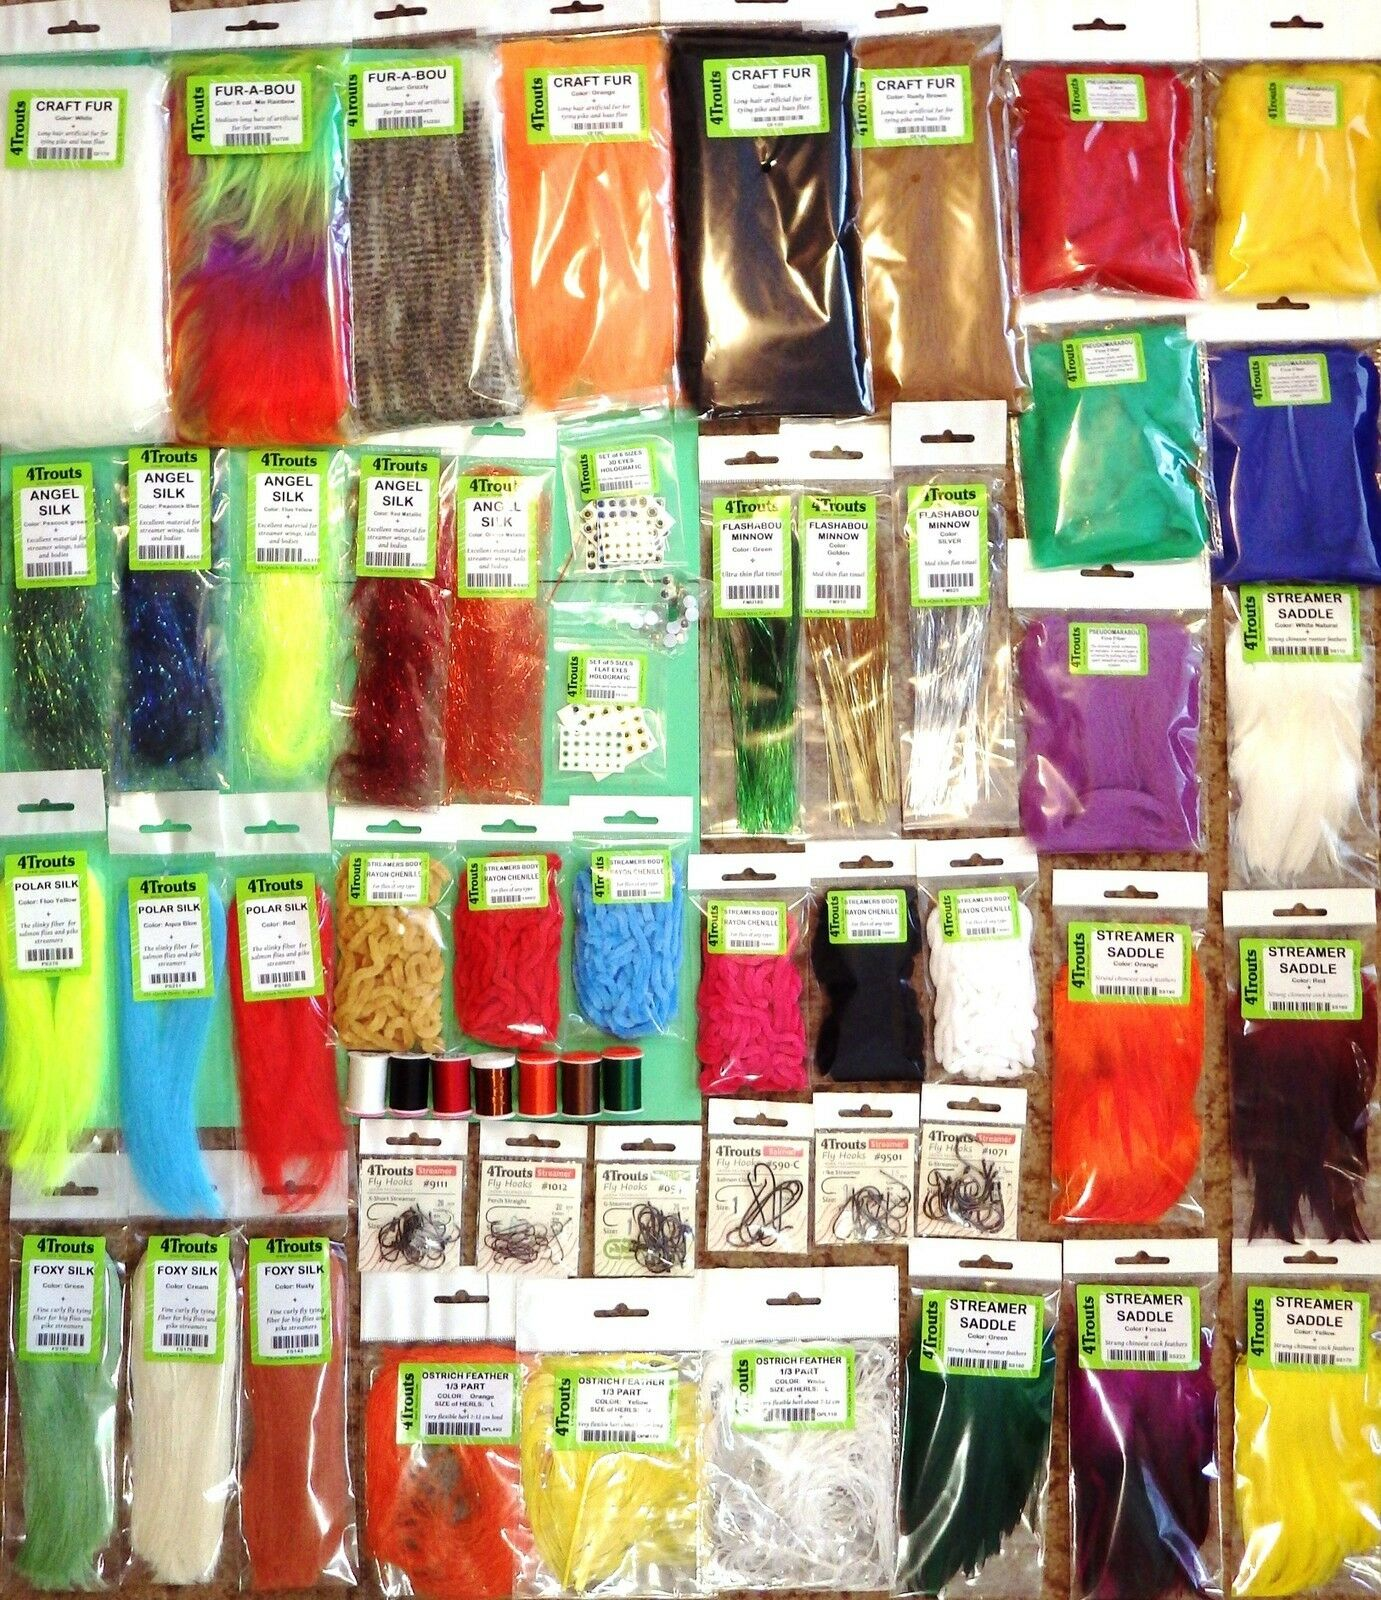 STREAMERS FLY TYING HUGE KIT Set of Fly tying streamers materials for beginners